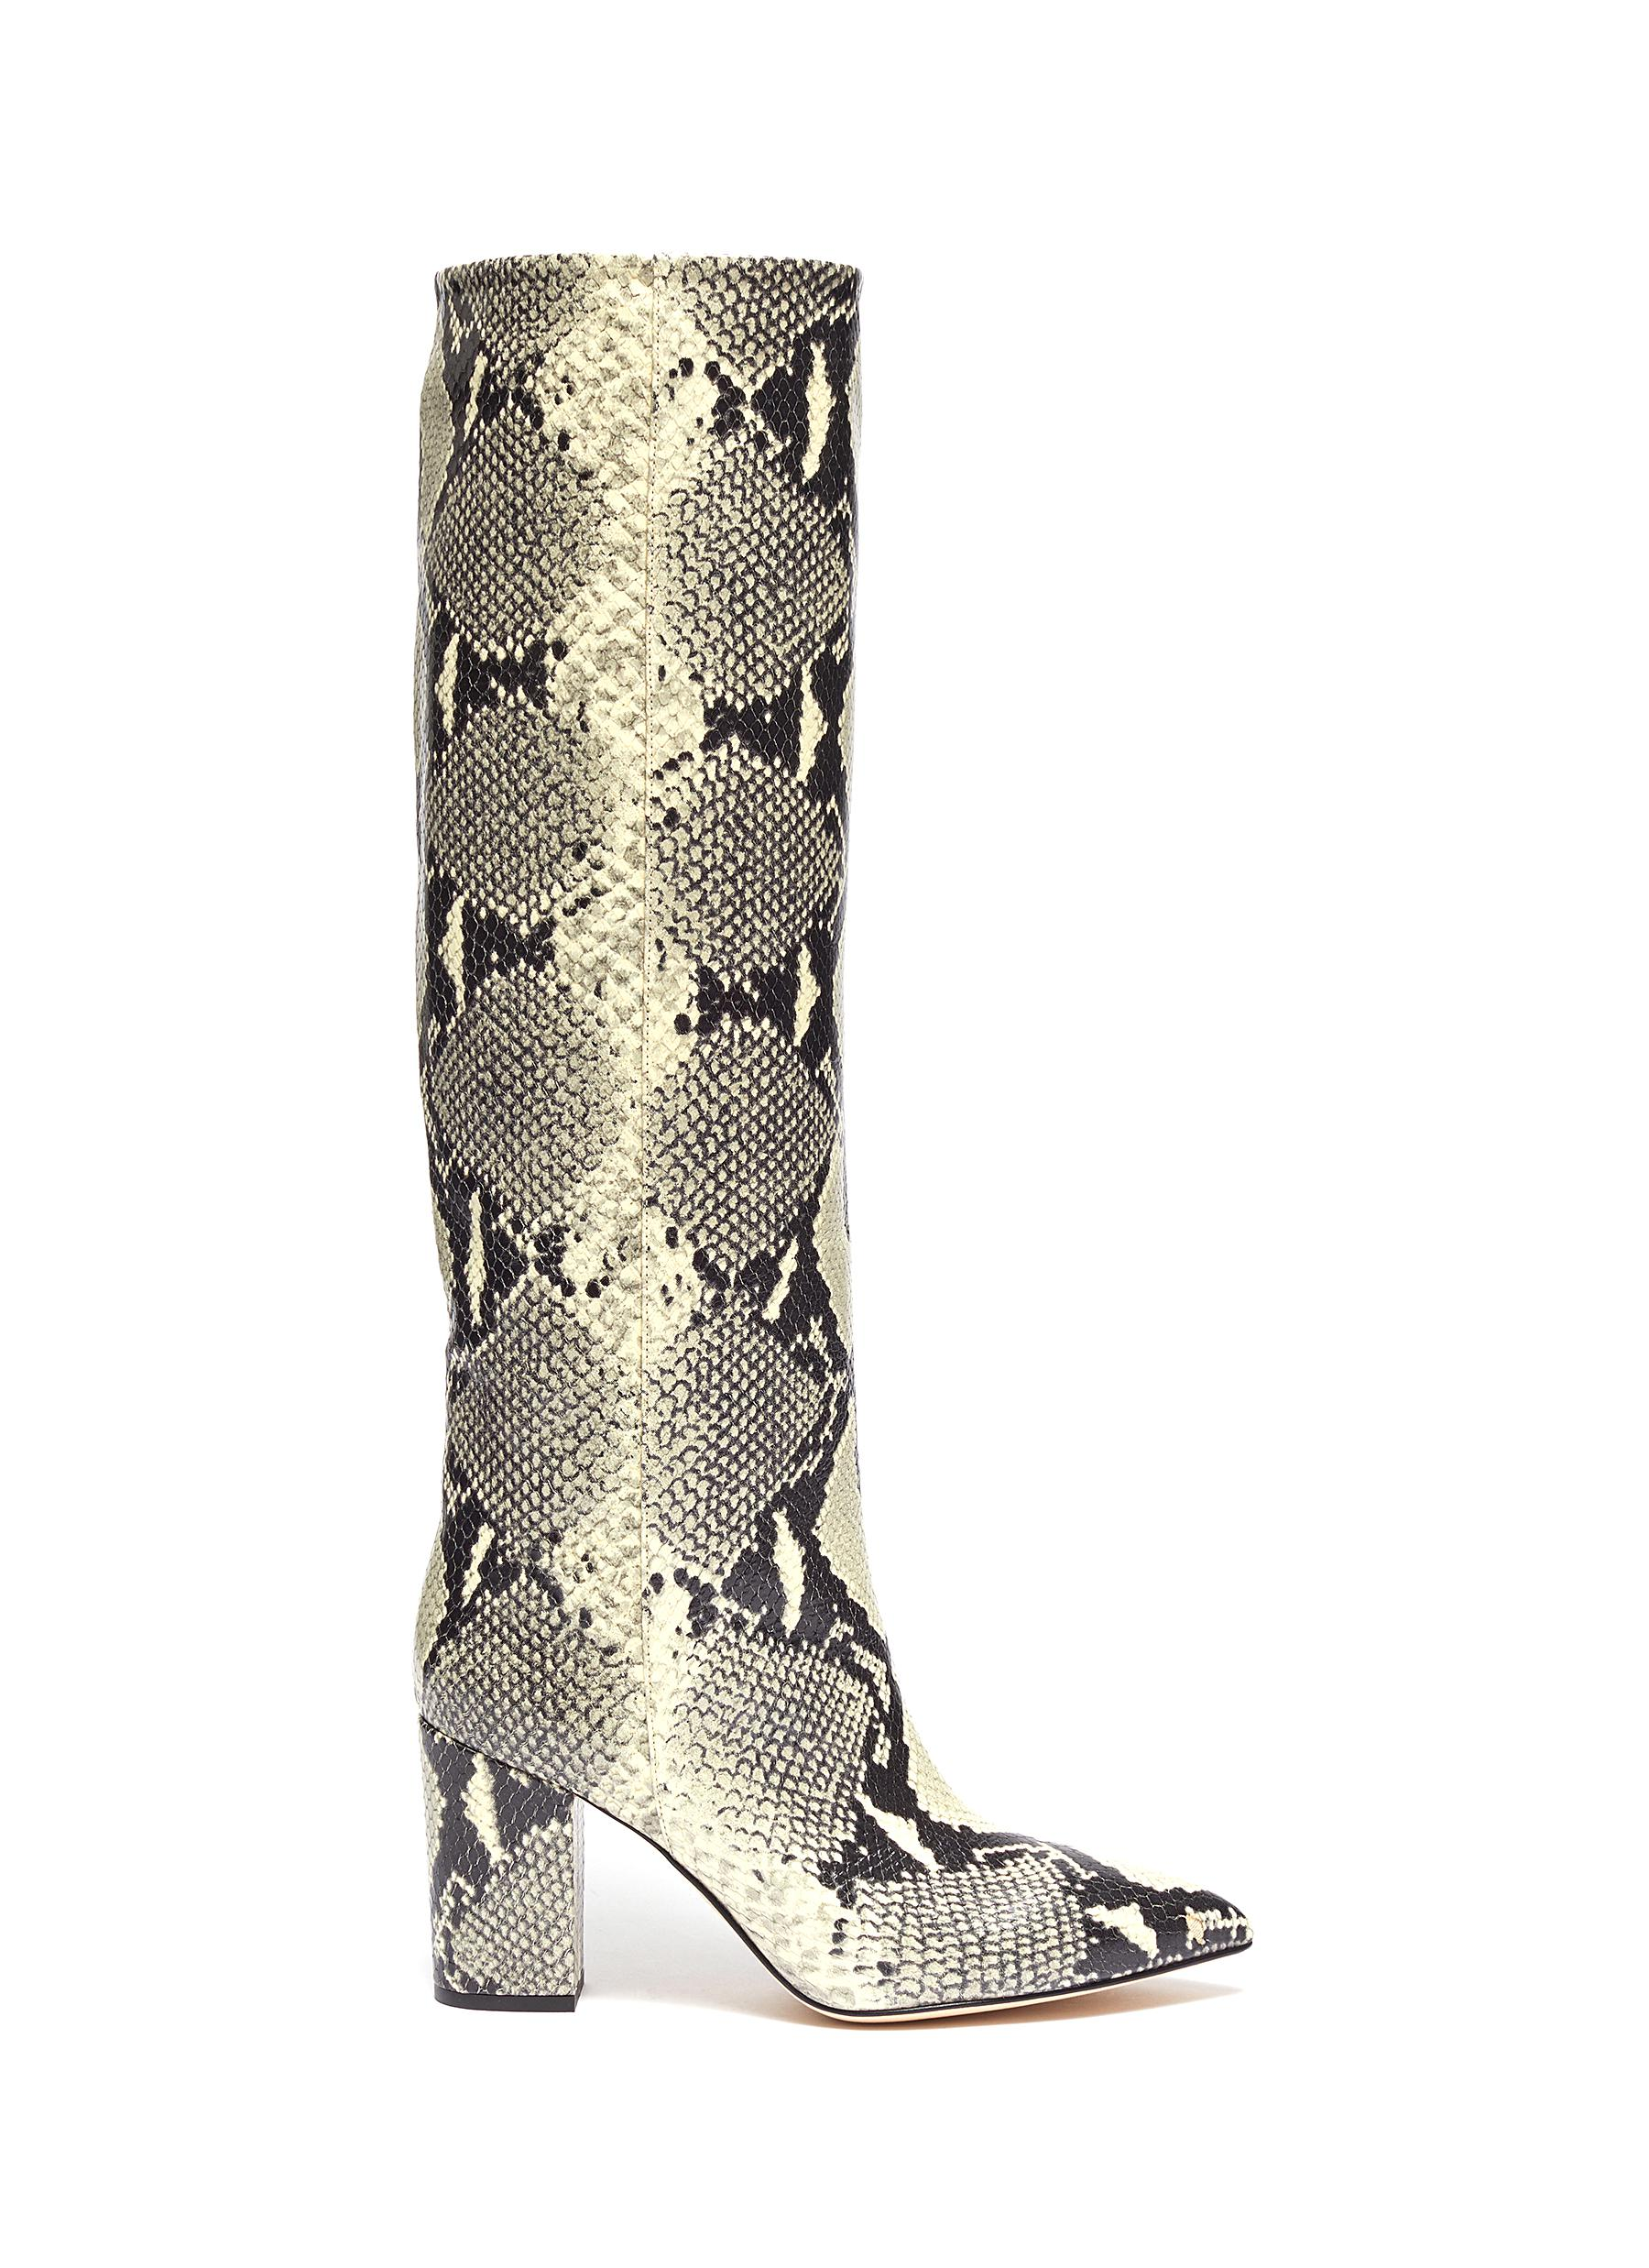 Snake embossed leather knee high boots by Paris Texas